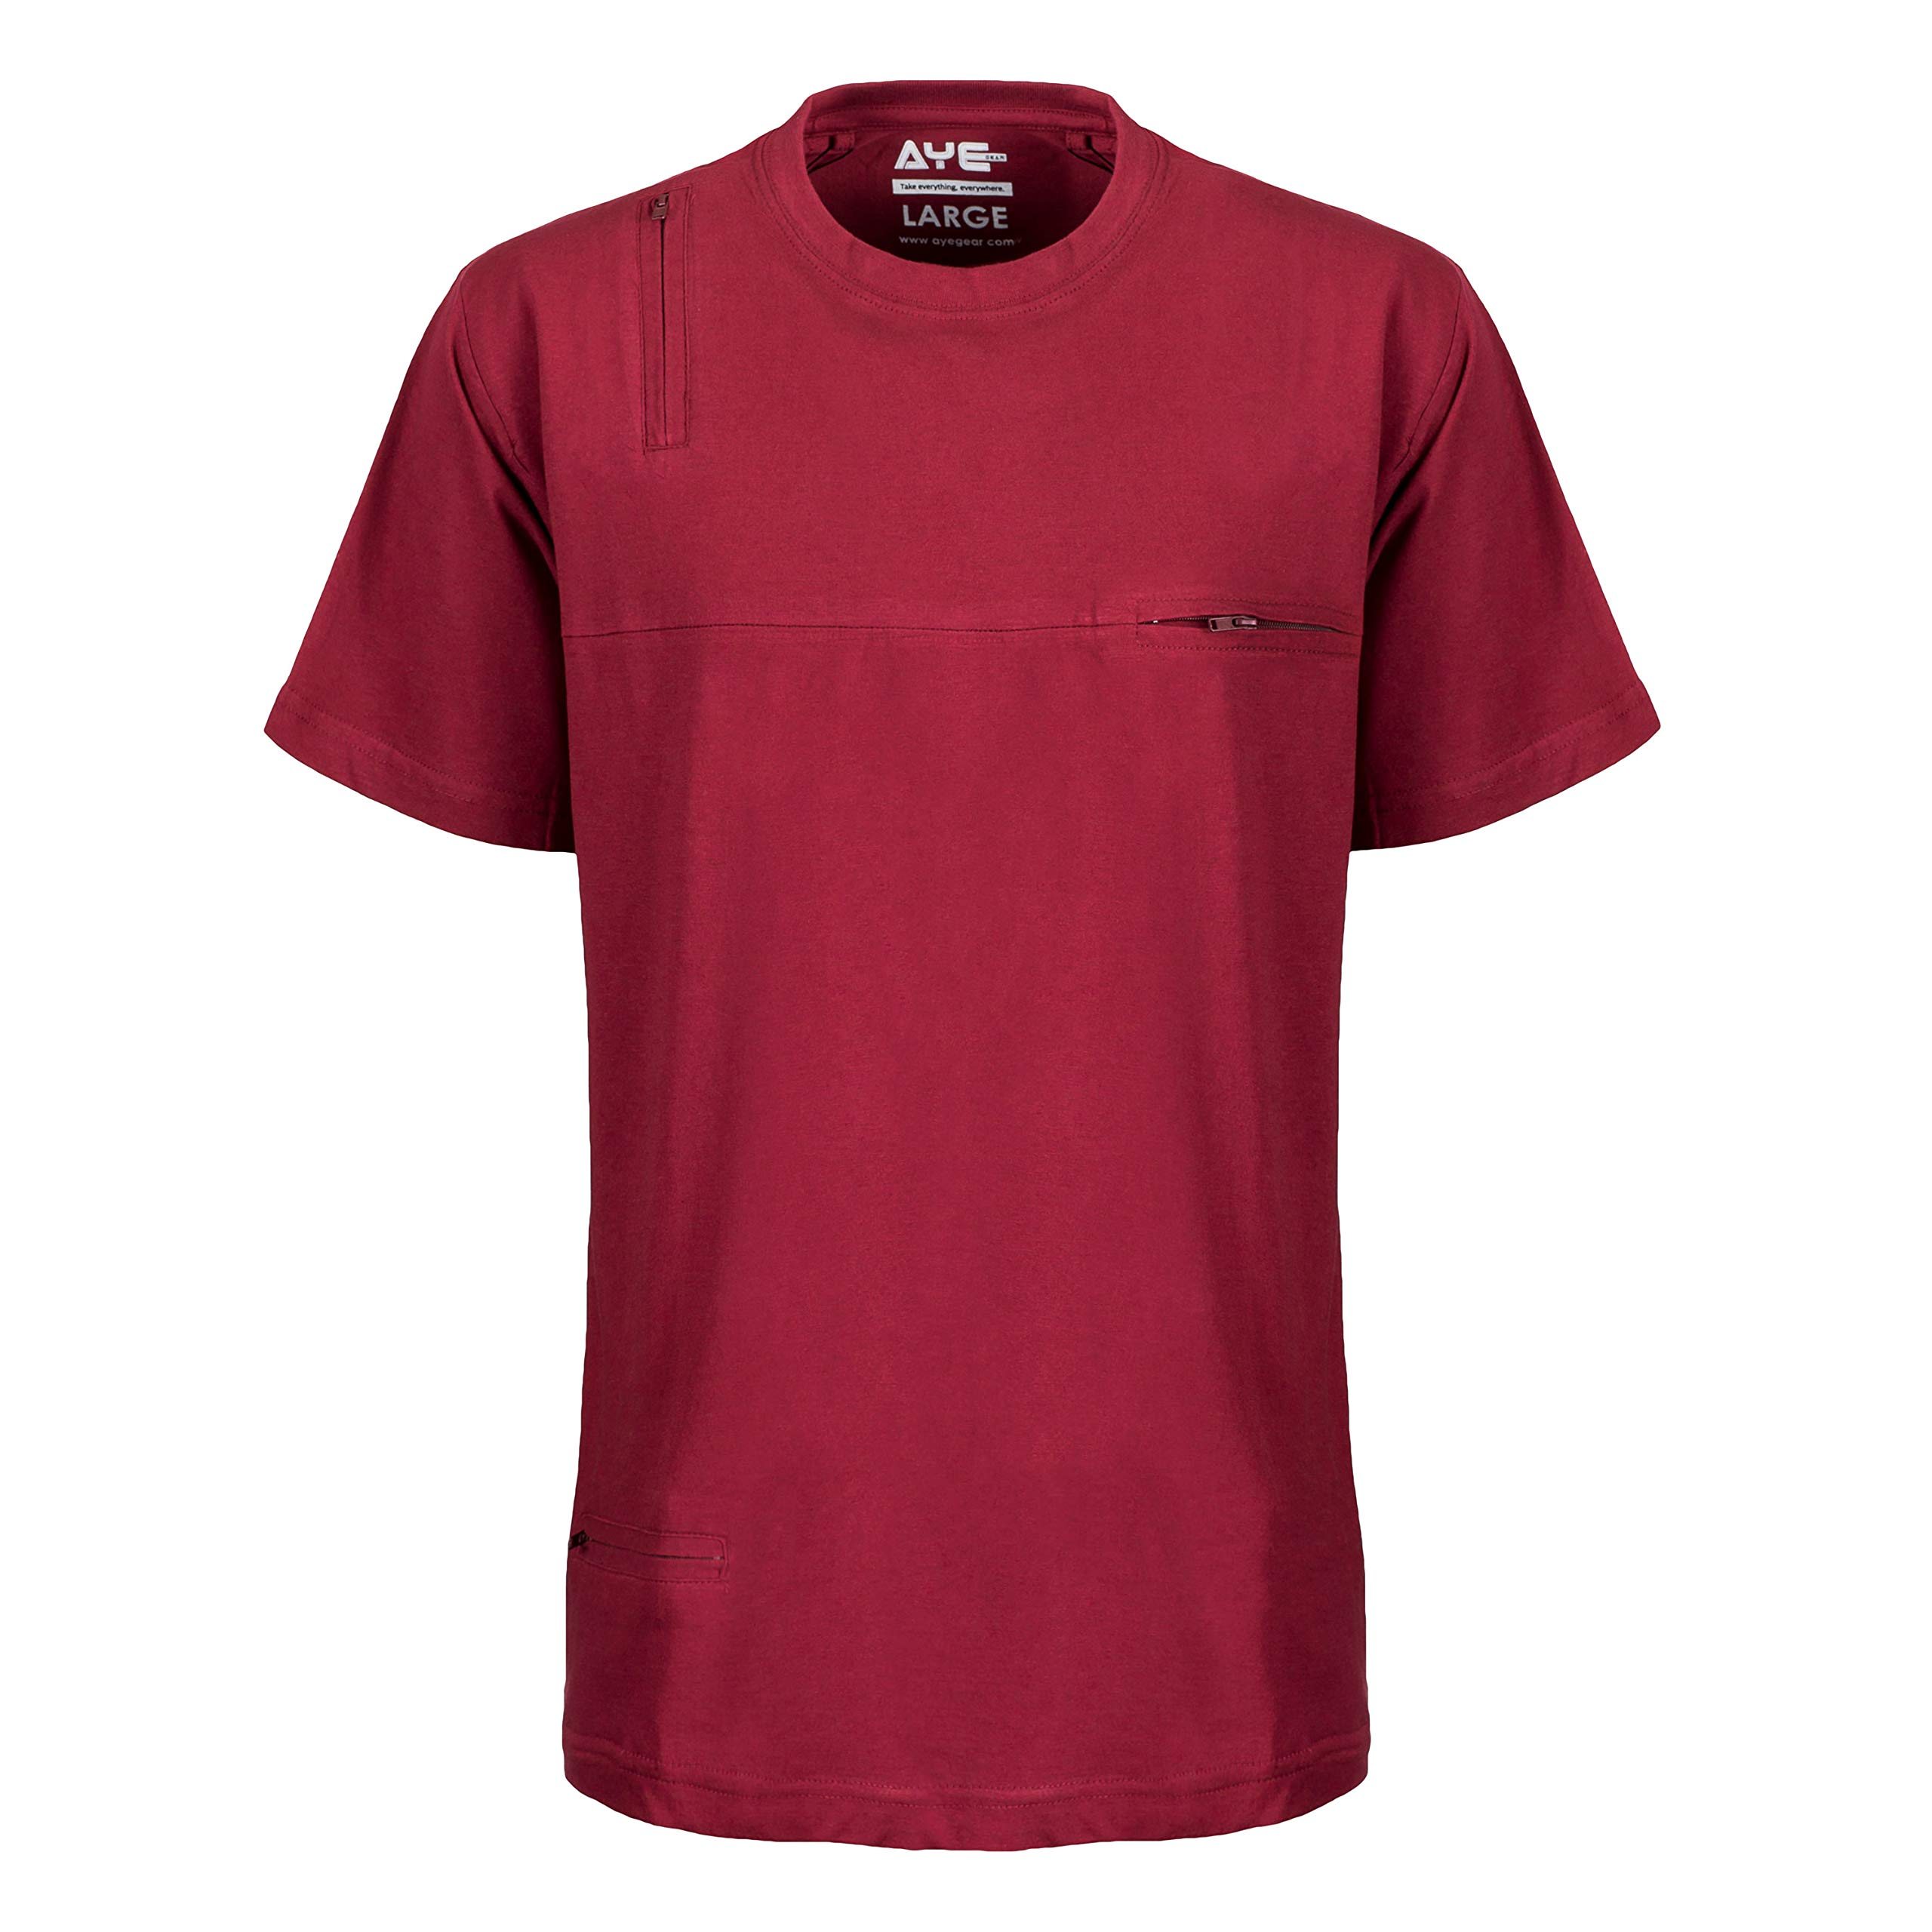 AyeGear T5 T-Shirt - 5 Discreet Pockets - Premium Quality with Soft Touch Feel - (Blood Red, XXXL) by AyeGear